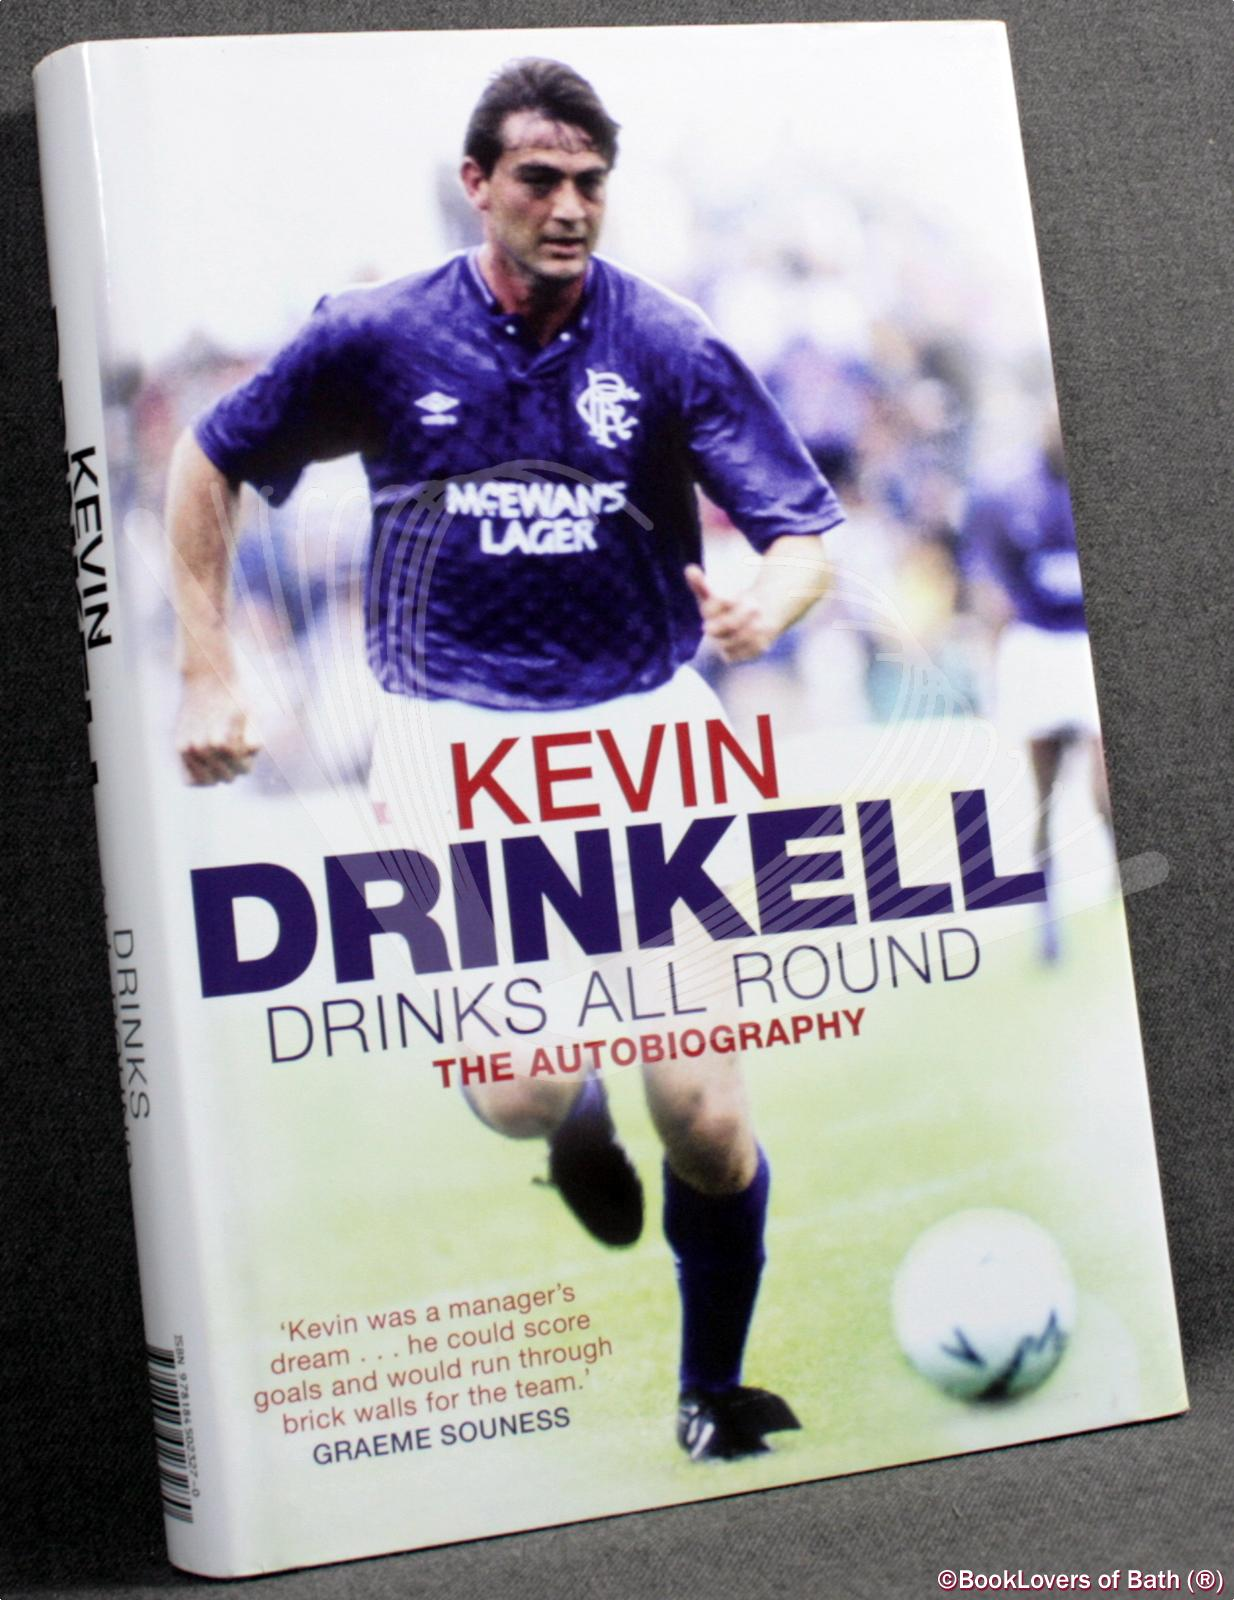 Drinks All Round: The Autobiography - Kevin Drinkell with Scott Burns